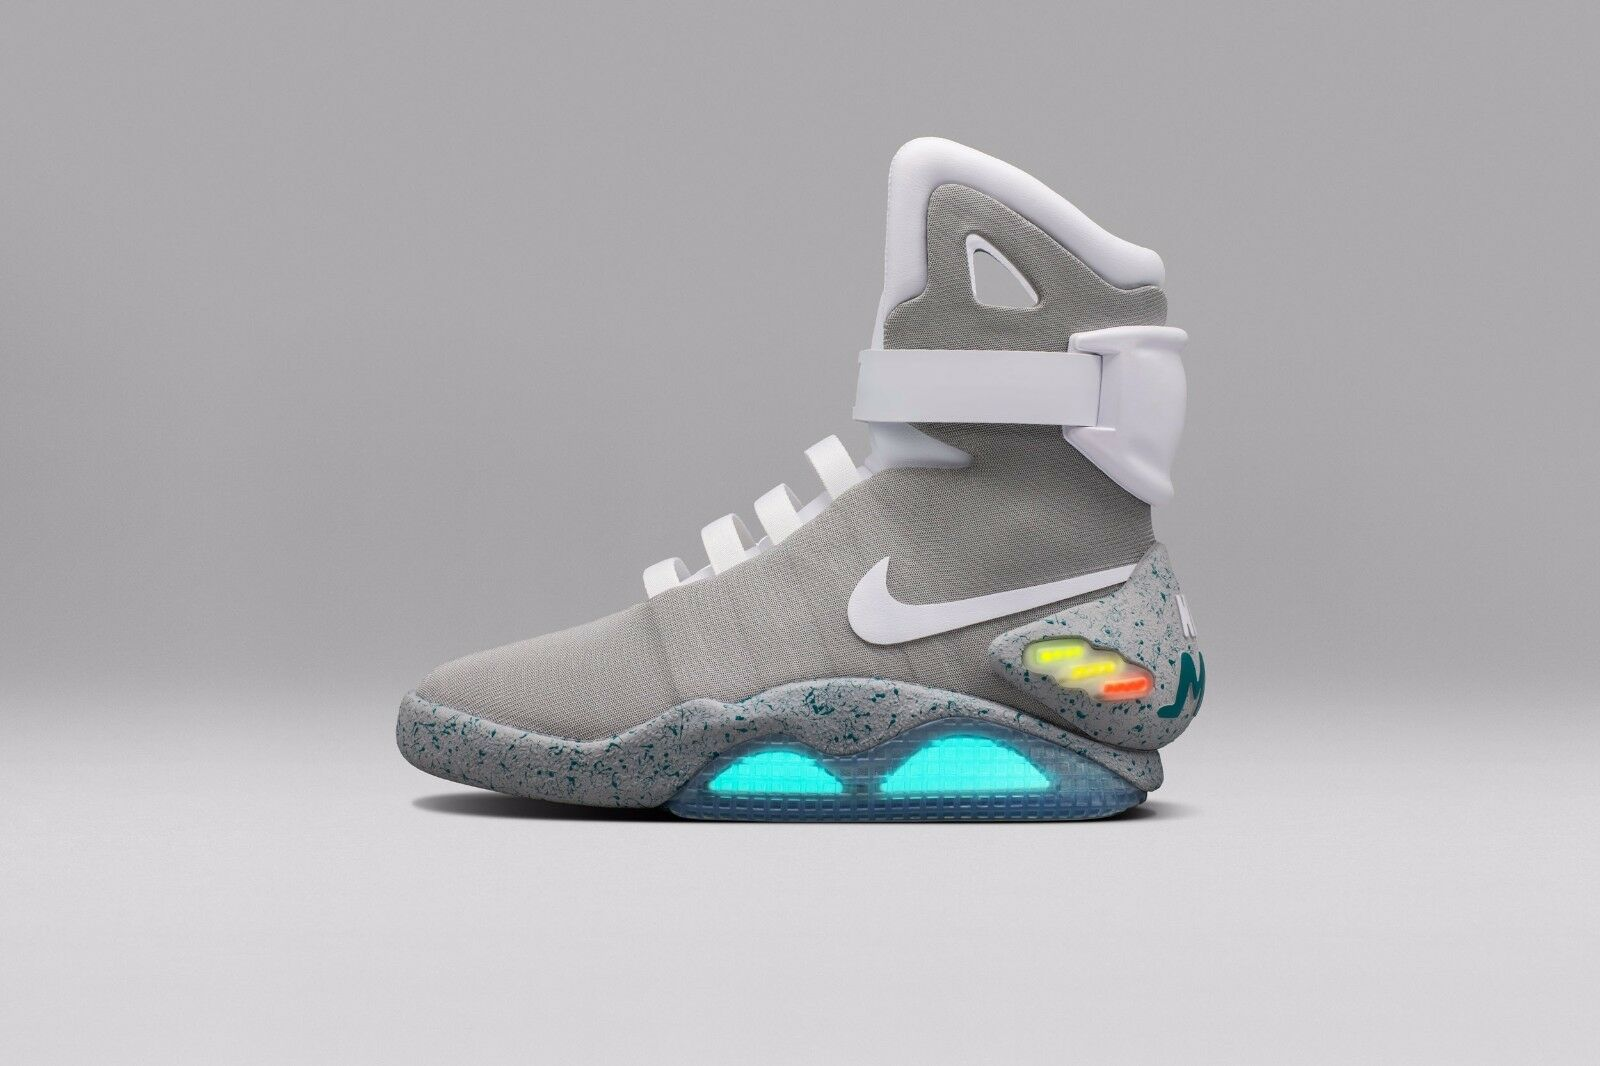 BRAND NEW - NIKE - AIR MAGS - BACK TO THE FUTURE - EXTREMELY RARE - HARD TO FIND